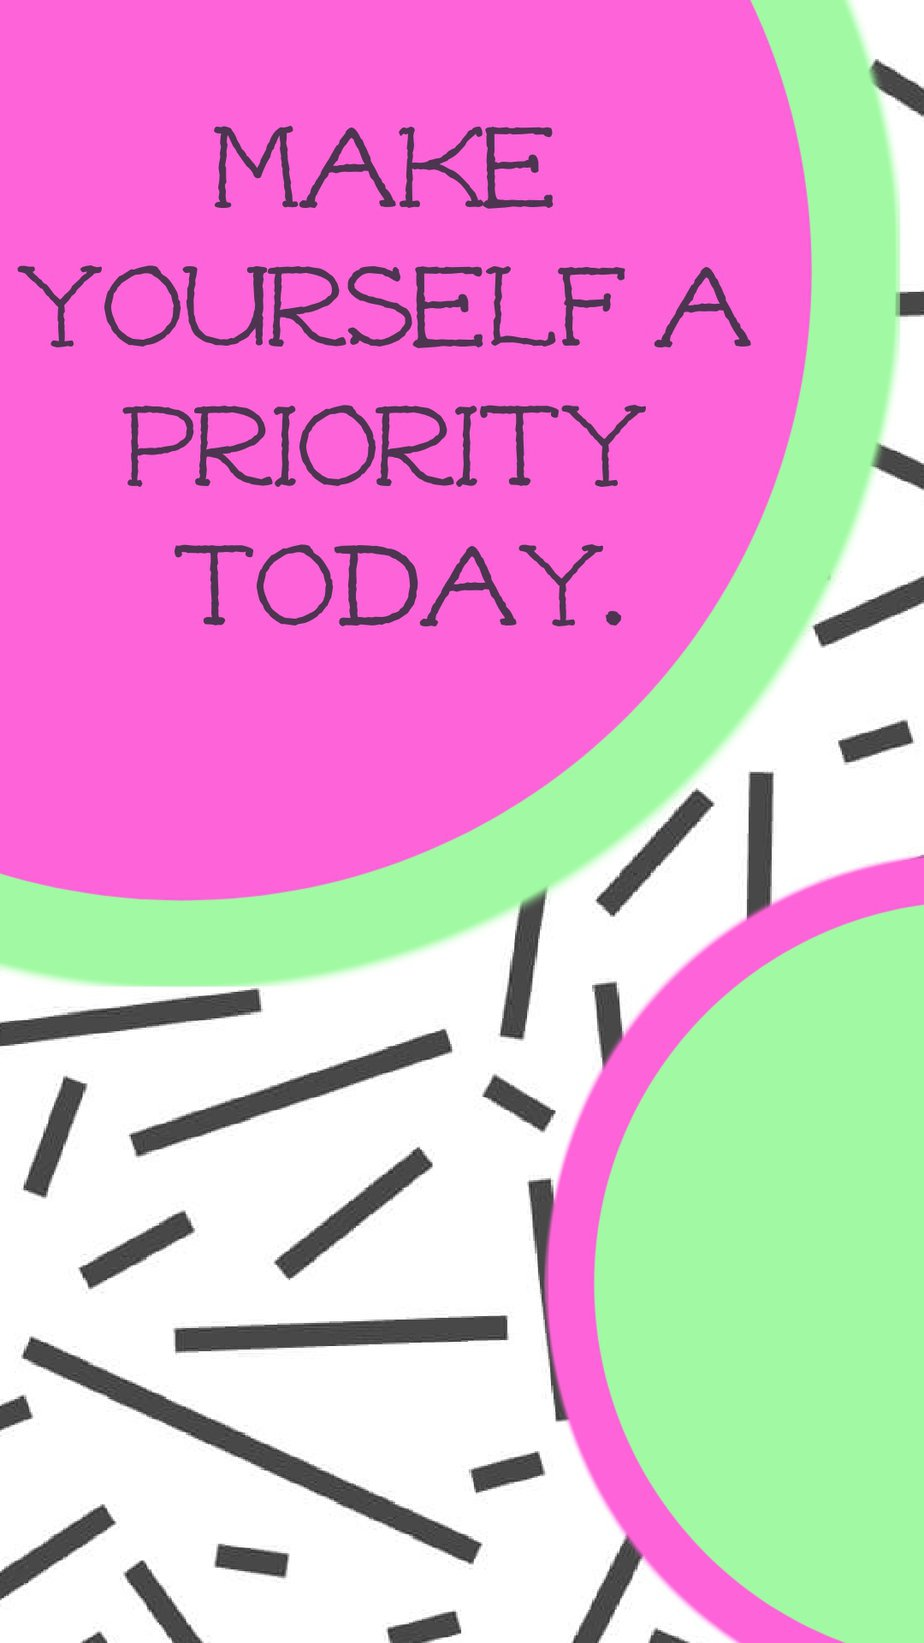 Best Aesthetic Phone Wallpaper Quotes About Priorities Make yourself a priority today